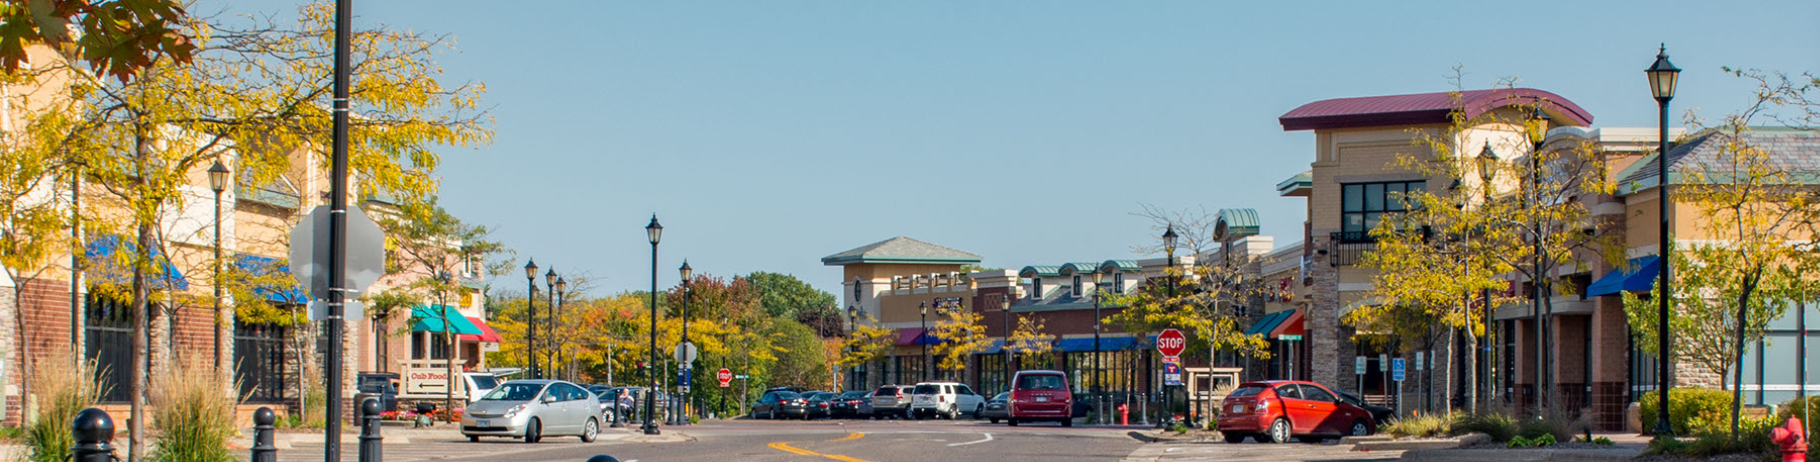 Silver Lake Village Shopping Center